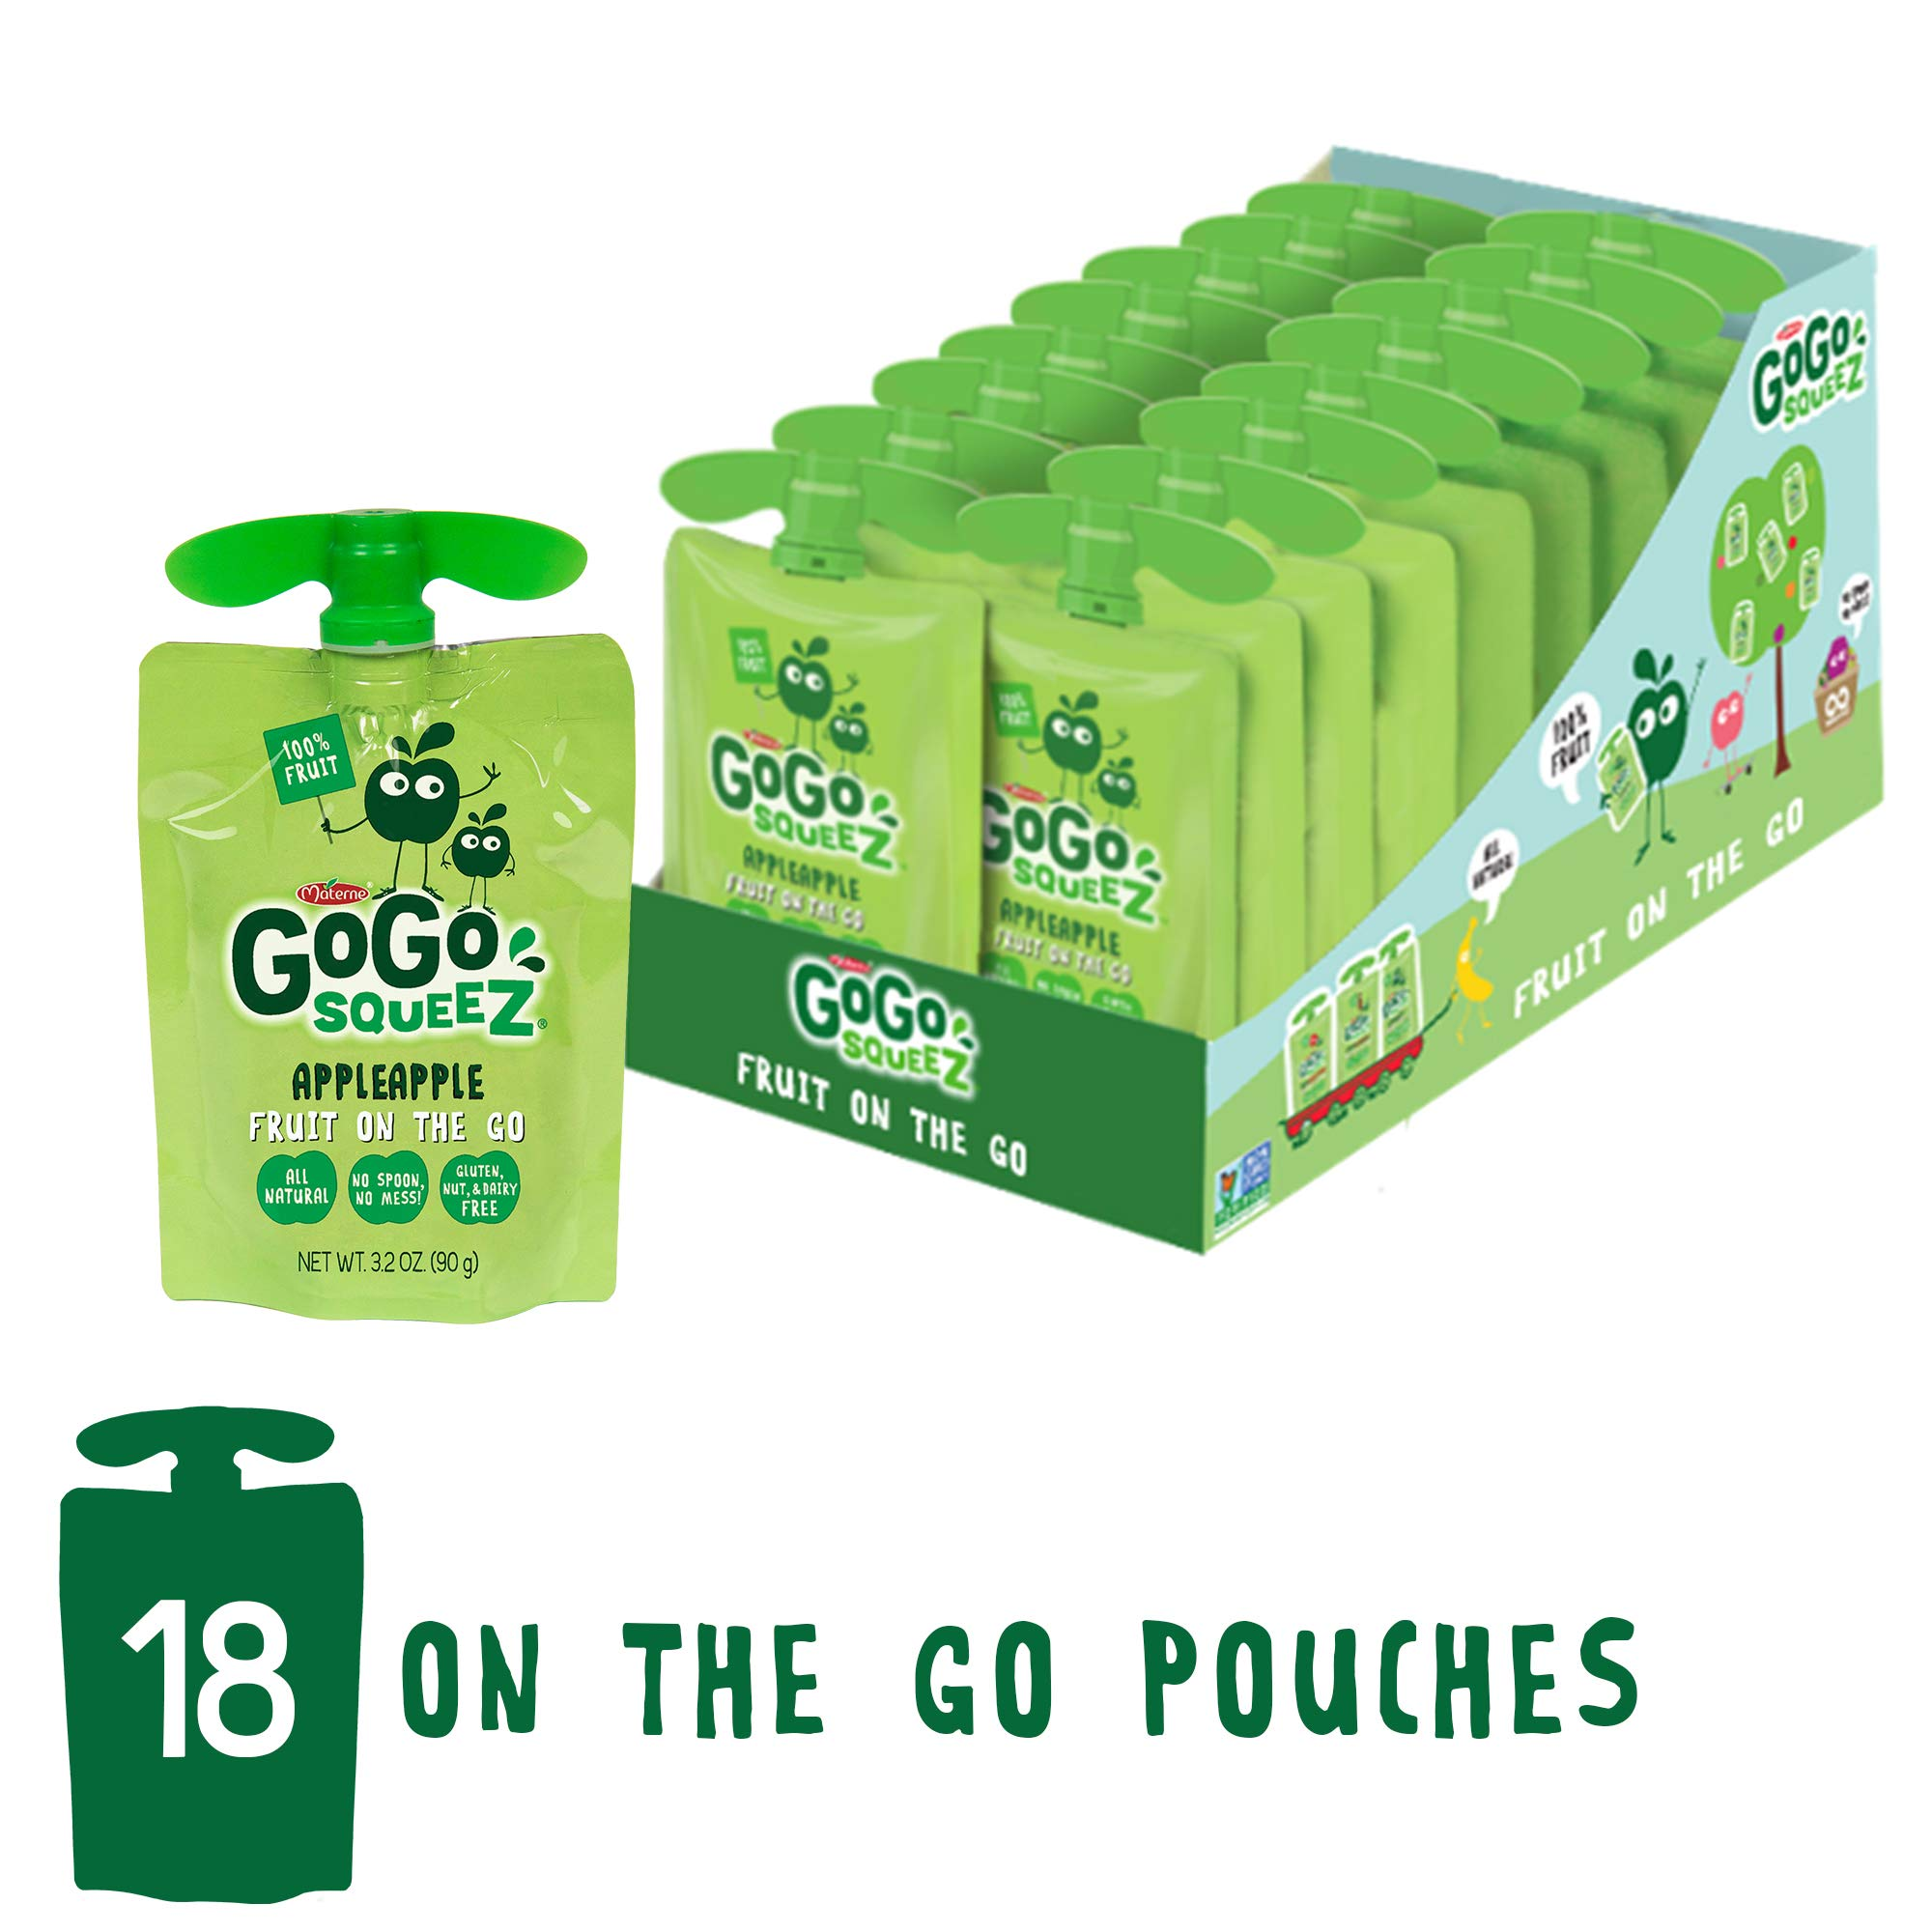 GoGo squeeZ Applesauce on the Go, Apple Apple, 3.2 Ounce (18 Pouches), Gluten Free, Vegan Friendly, Healthy Snacks, Unsweetened Applesauce, Recloseable, BPA Free Pouches by GoGo SqueeZ